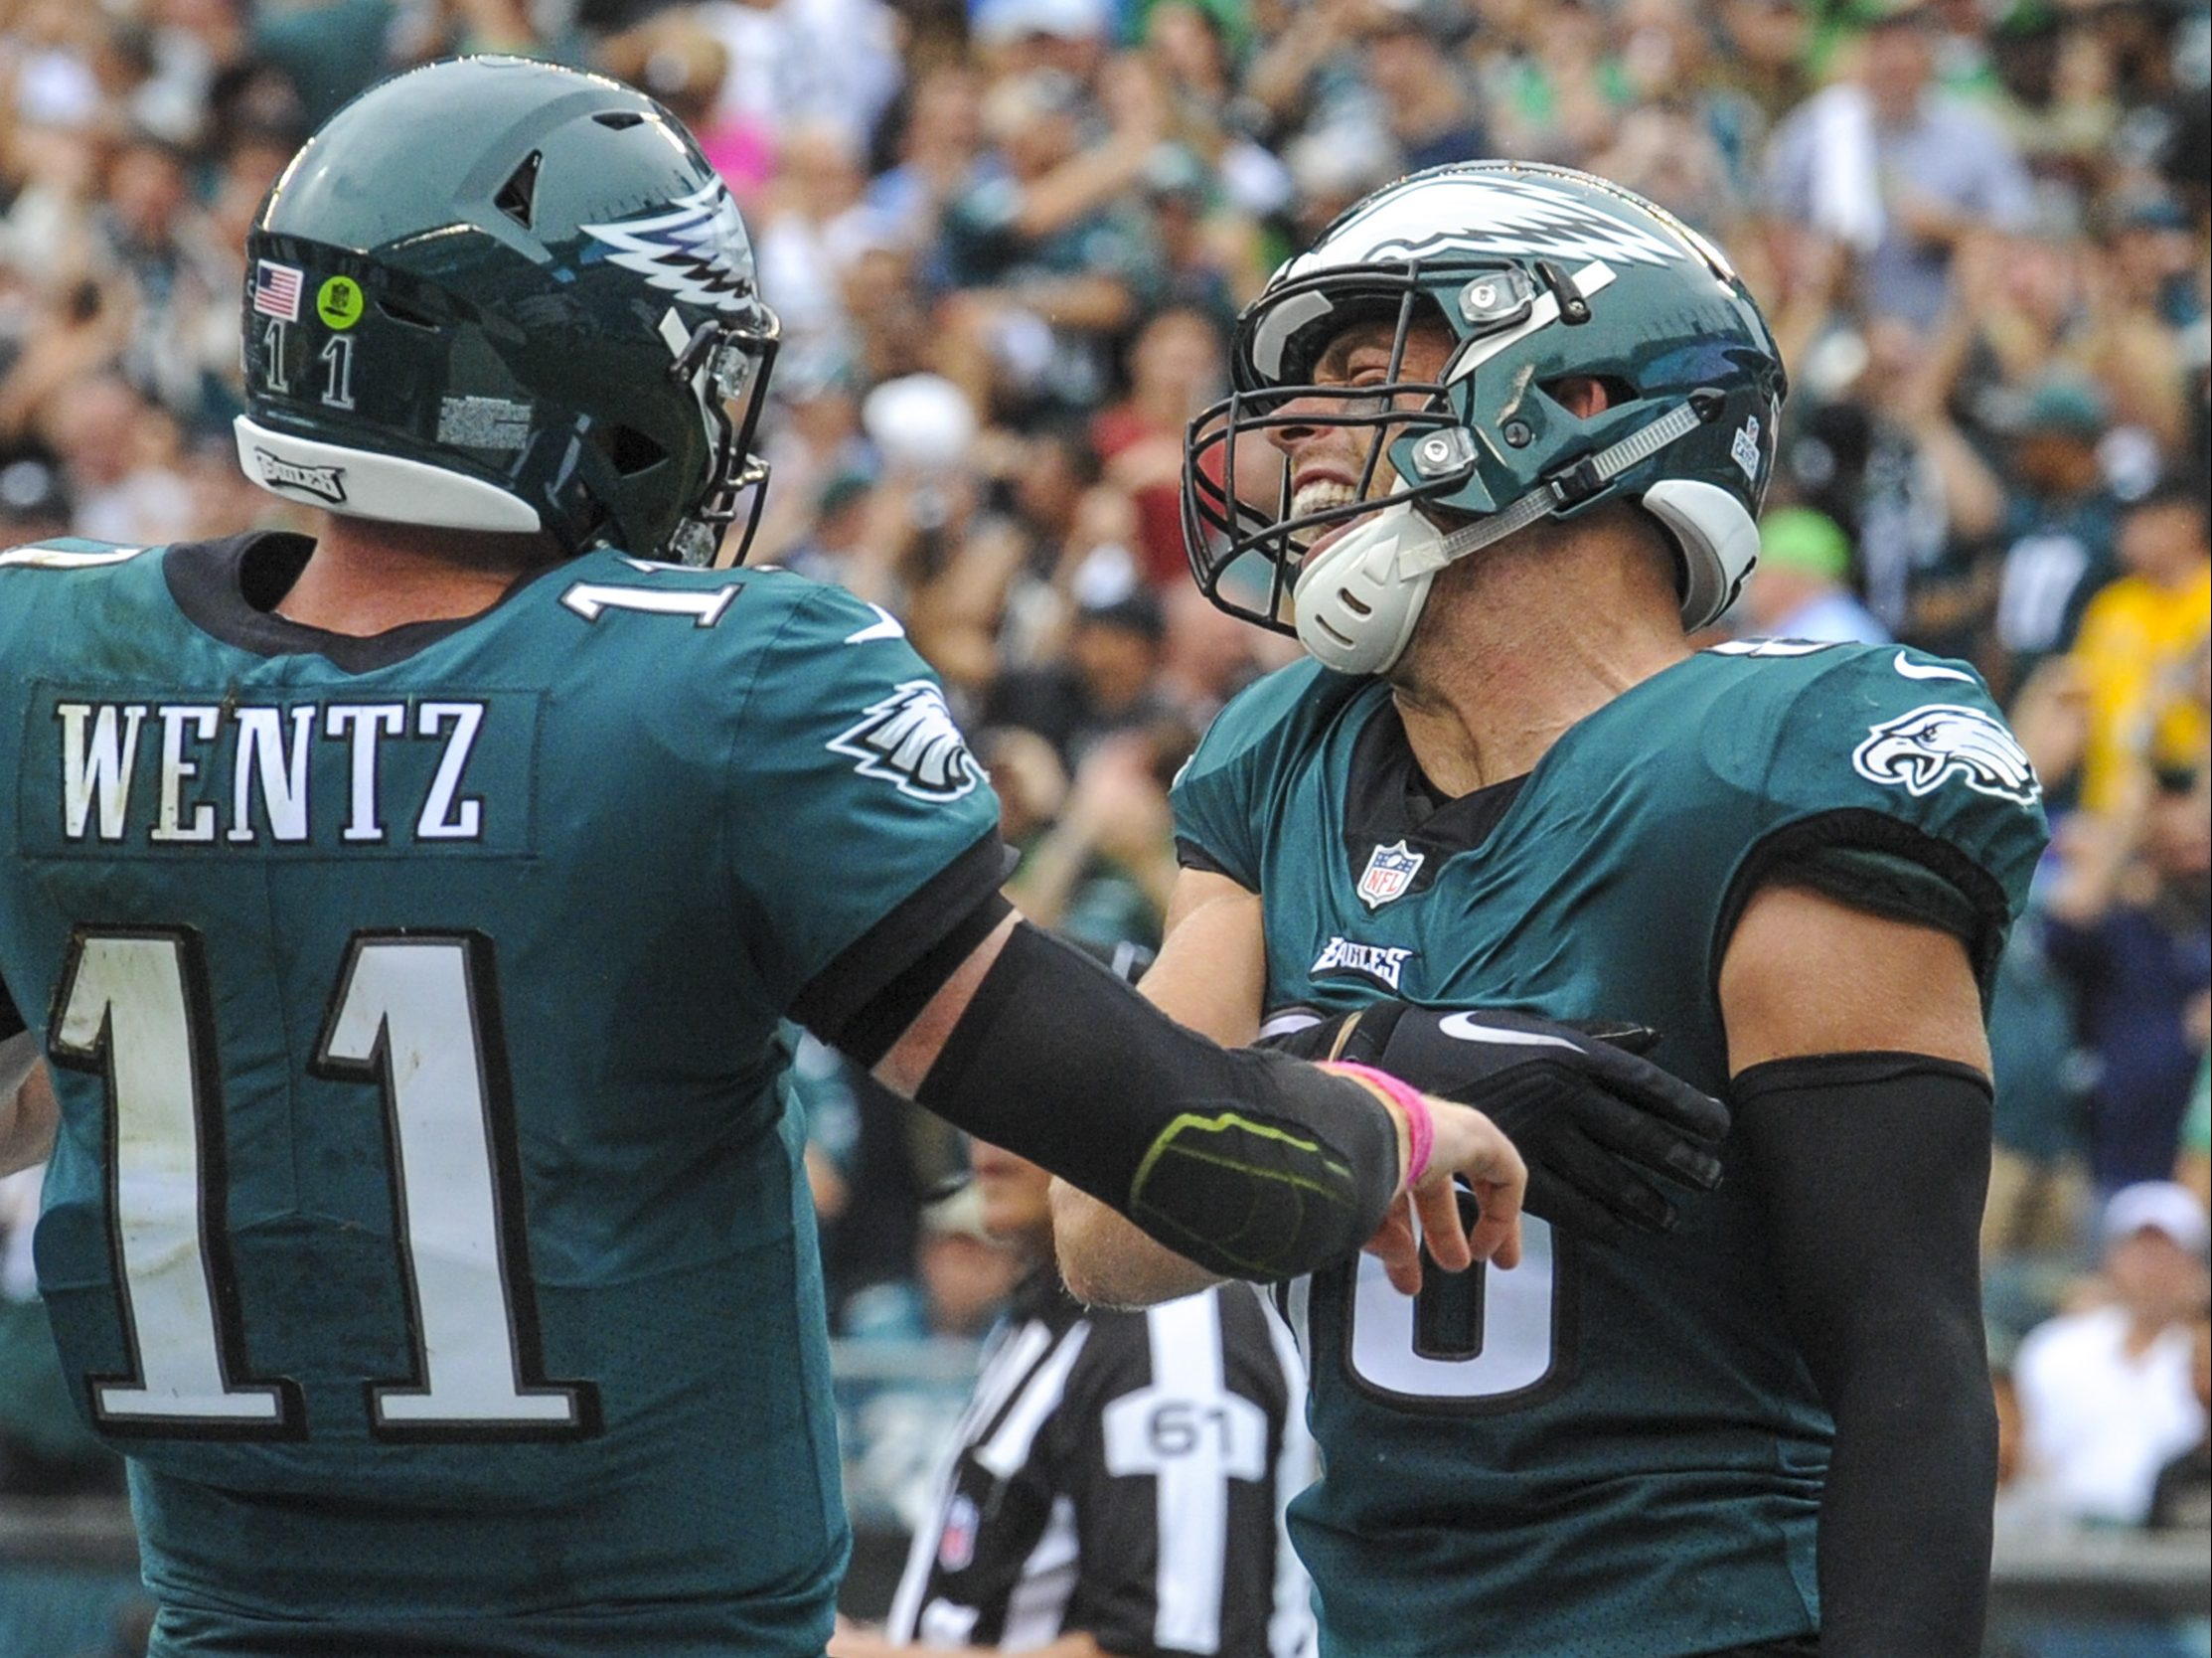 Zach Ertz and Carson Wentz celebrating after a touchdown pass against the Cardinals this past season.